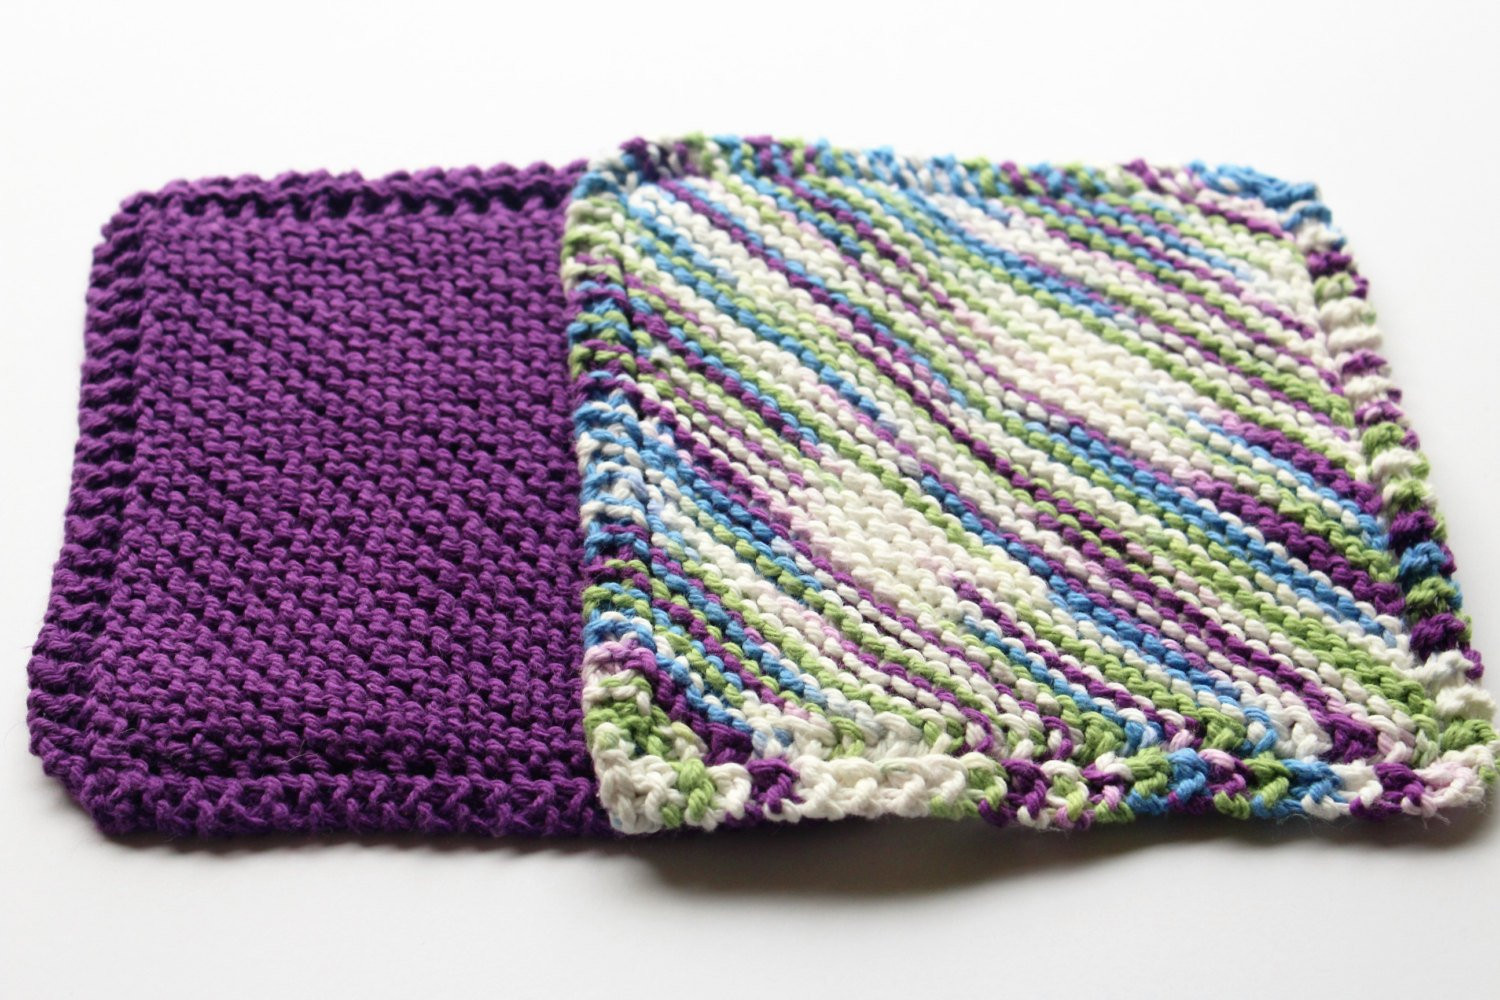 Knit Dish Cloths Hand Knit Dishcloth Set of 2 Dishcloths